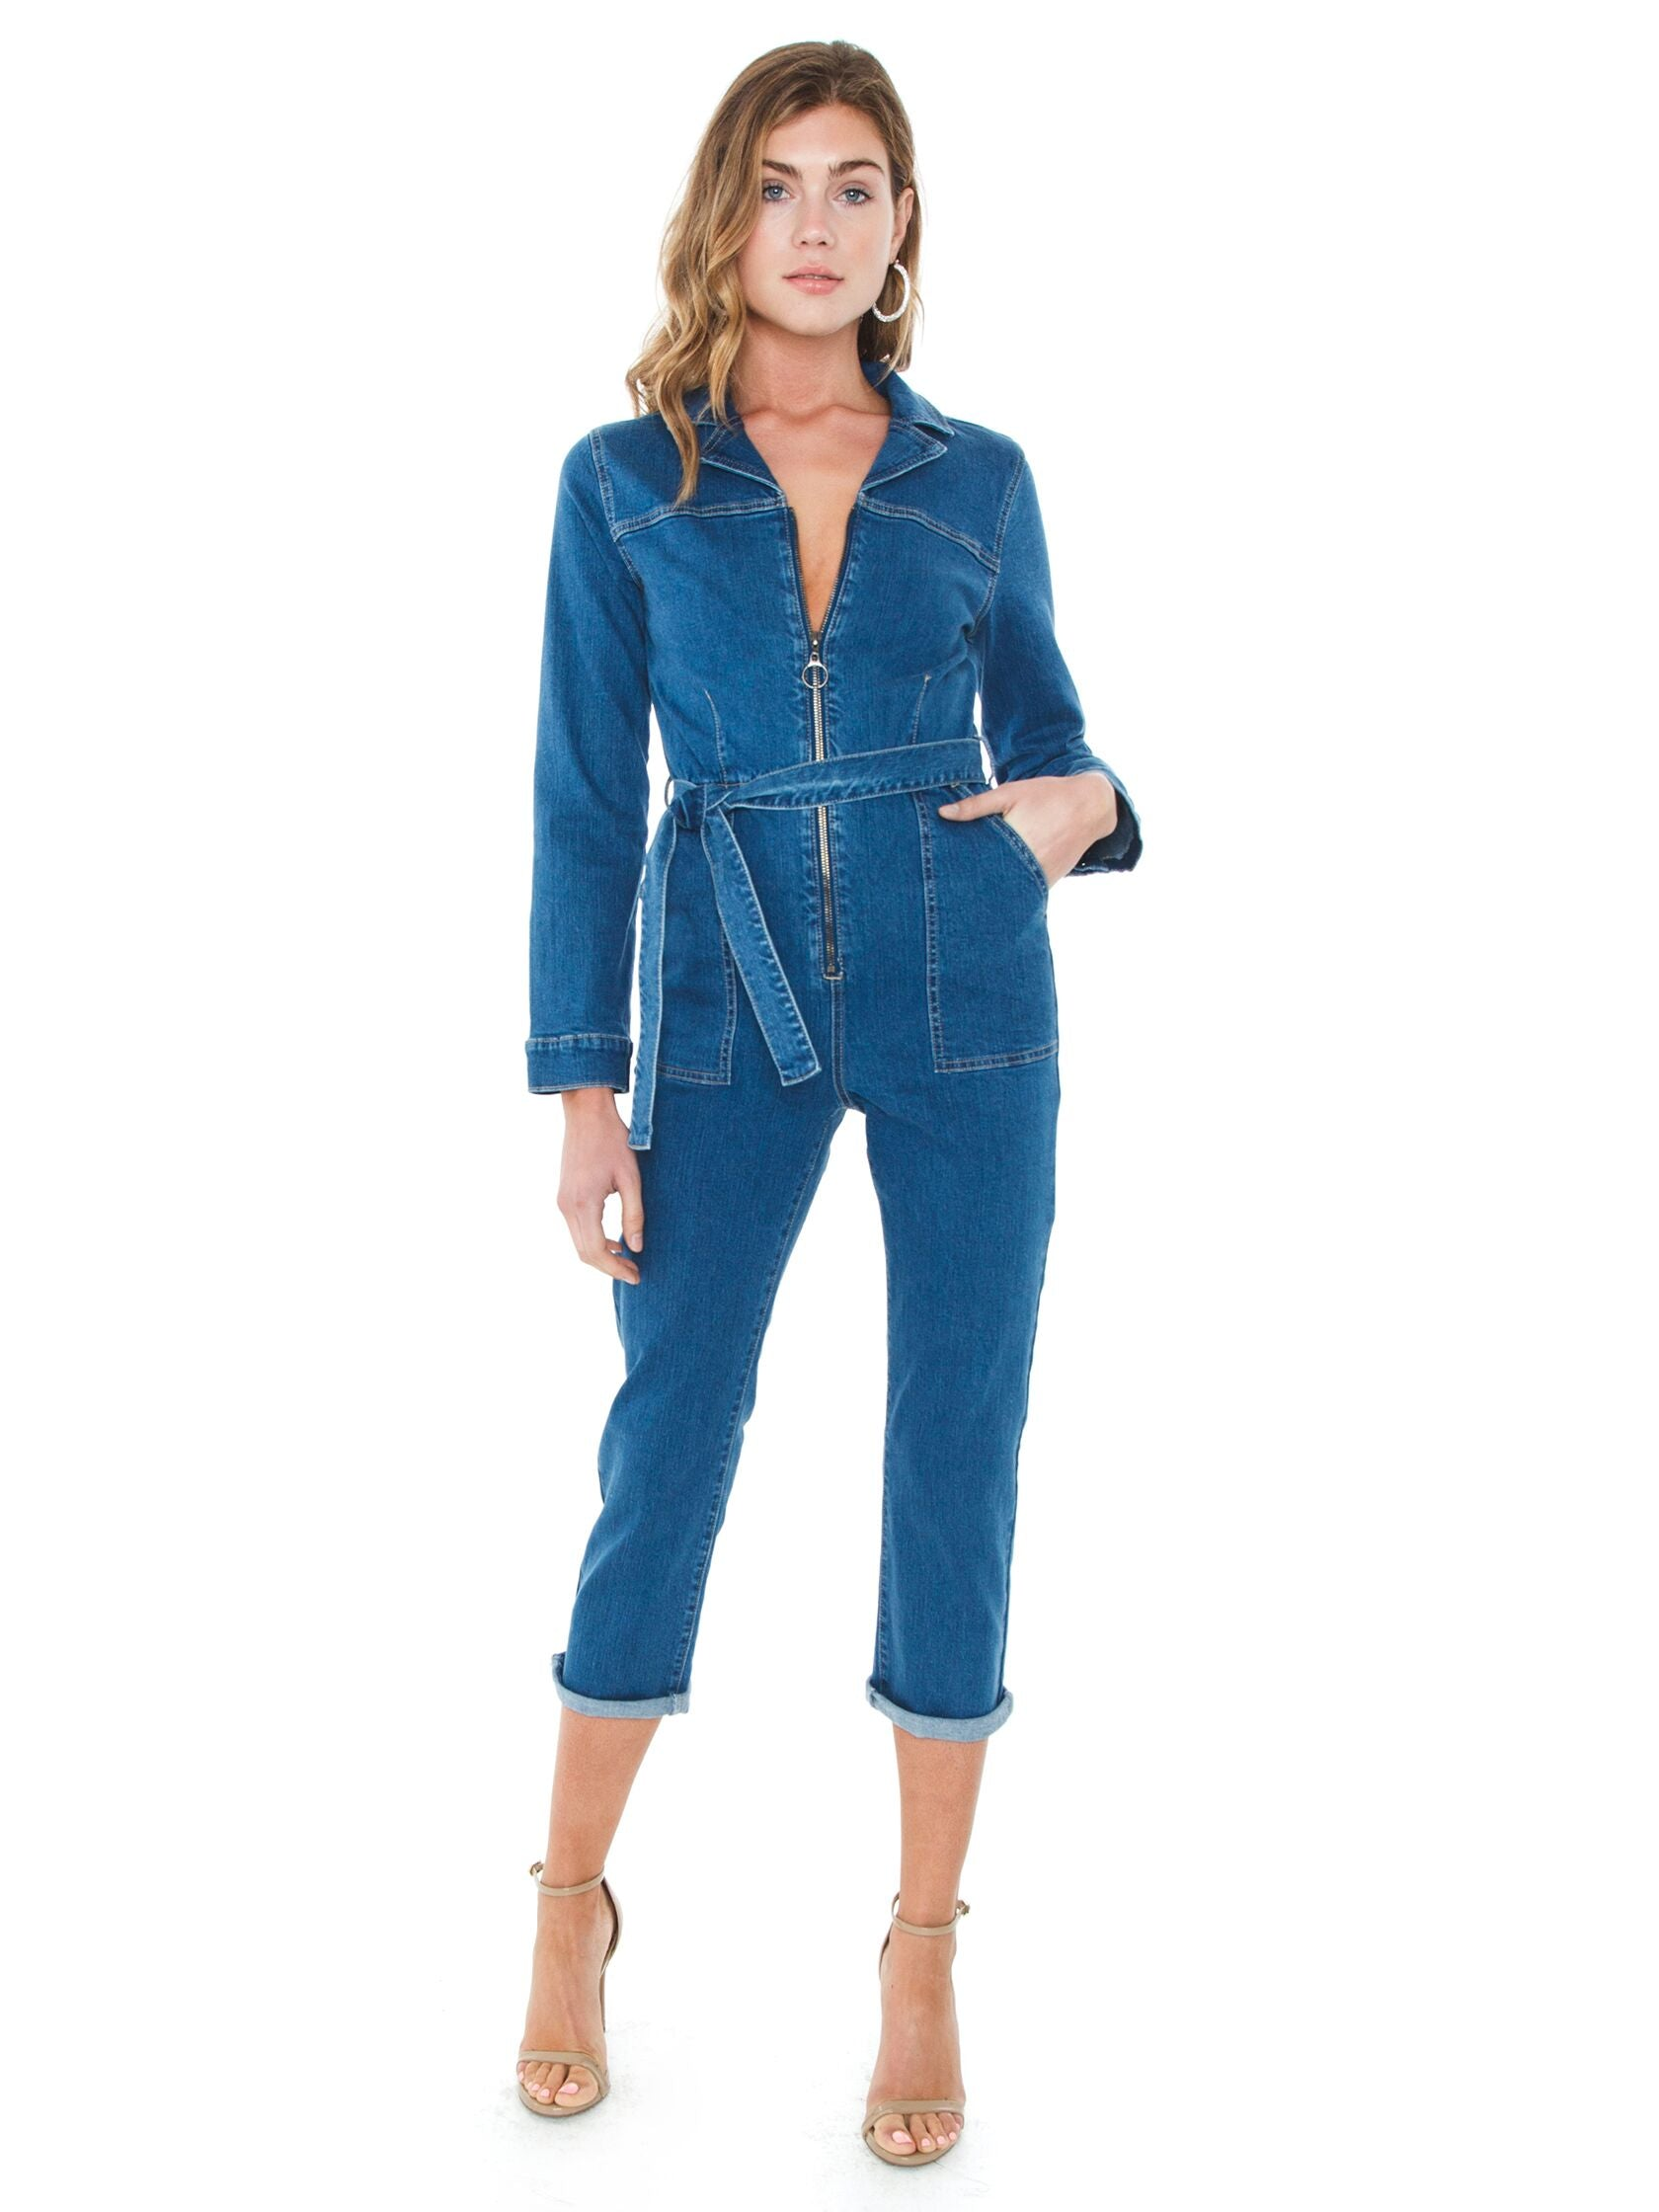 Girl outfit in a jumpsuit rental from MINKPINK called Keeping Time Boiler Suit